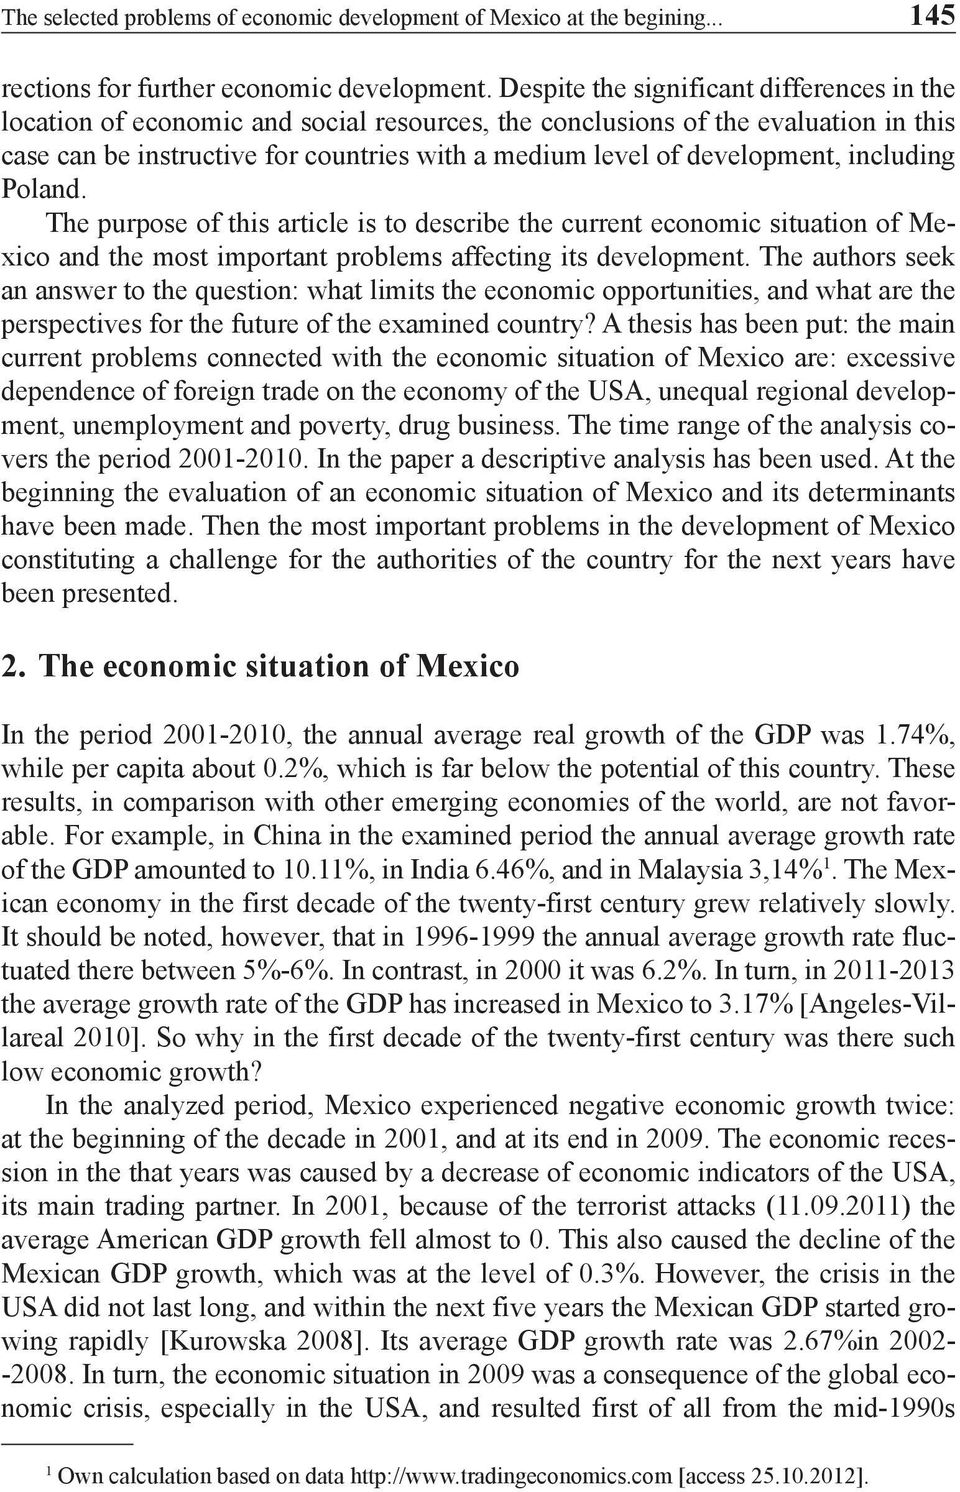 development, including Poland. The purpose of this article is to describe the current economic situation of Mexico and the most important problems affecting its development.